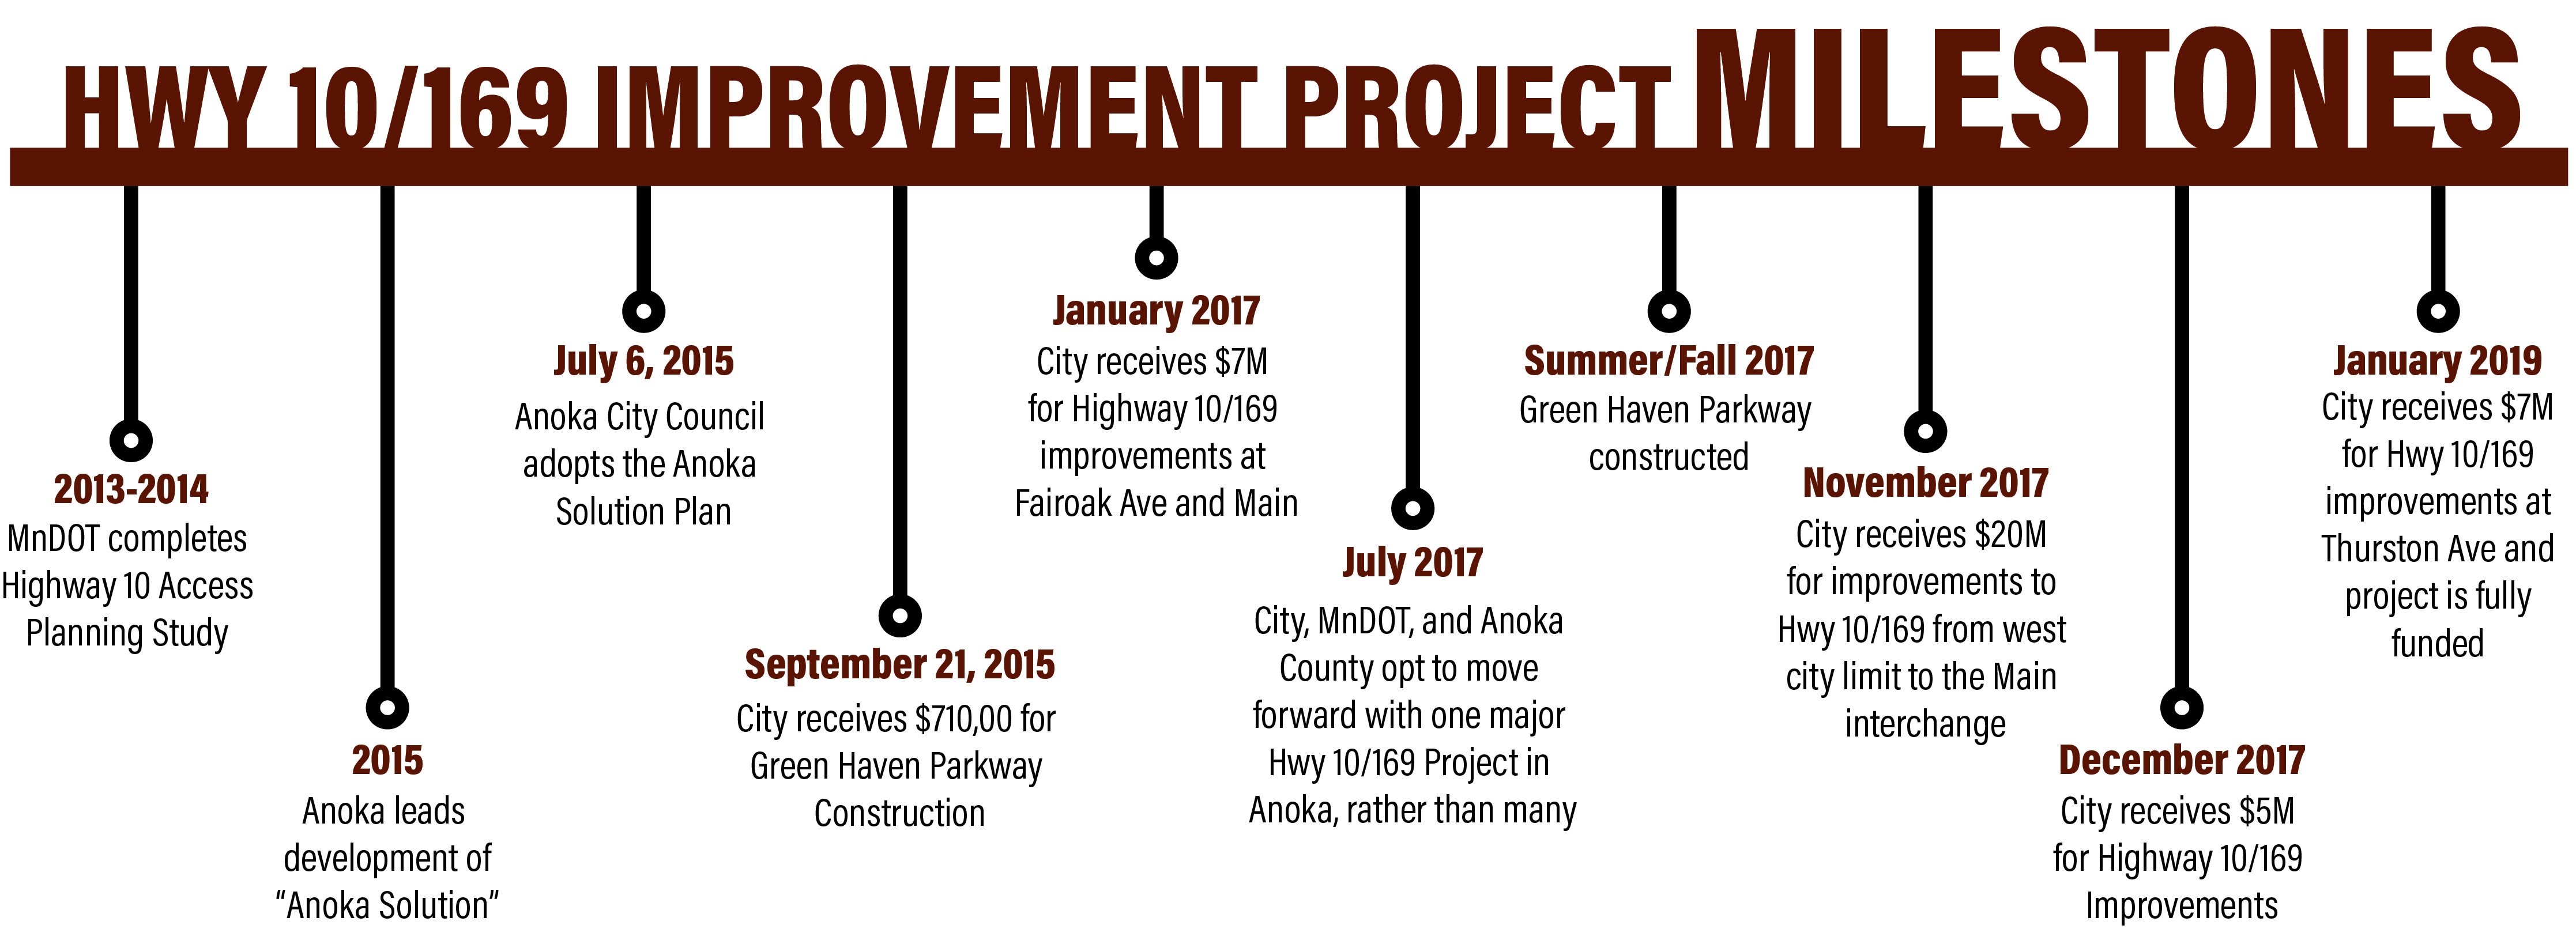 Timeline of Milestones for the Highway 10/169 Improvement Project